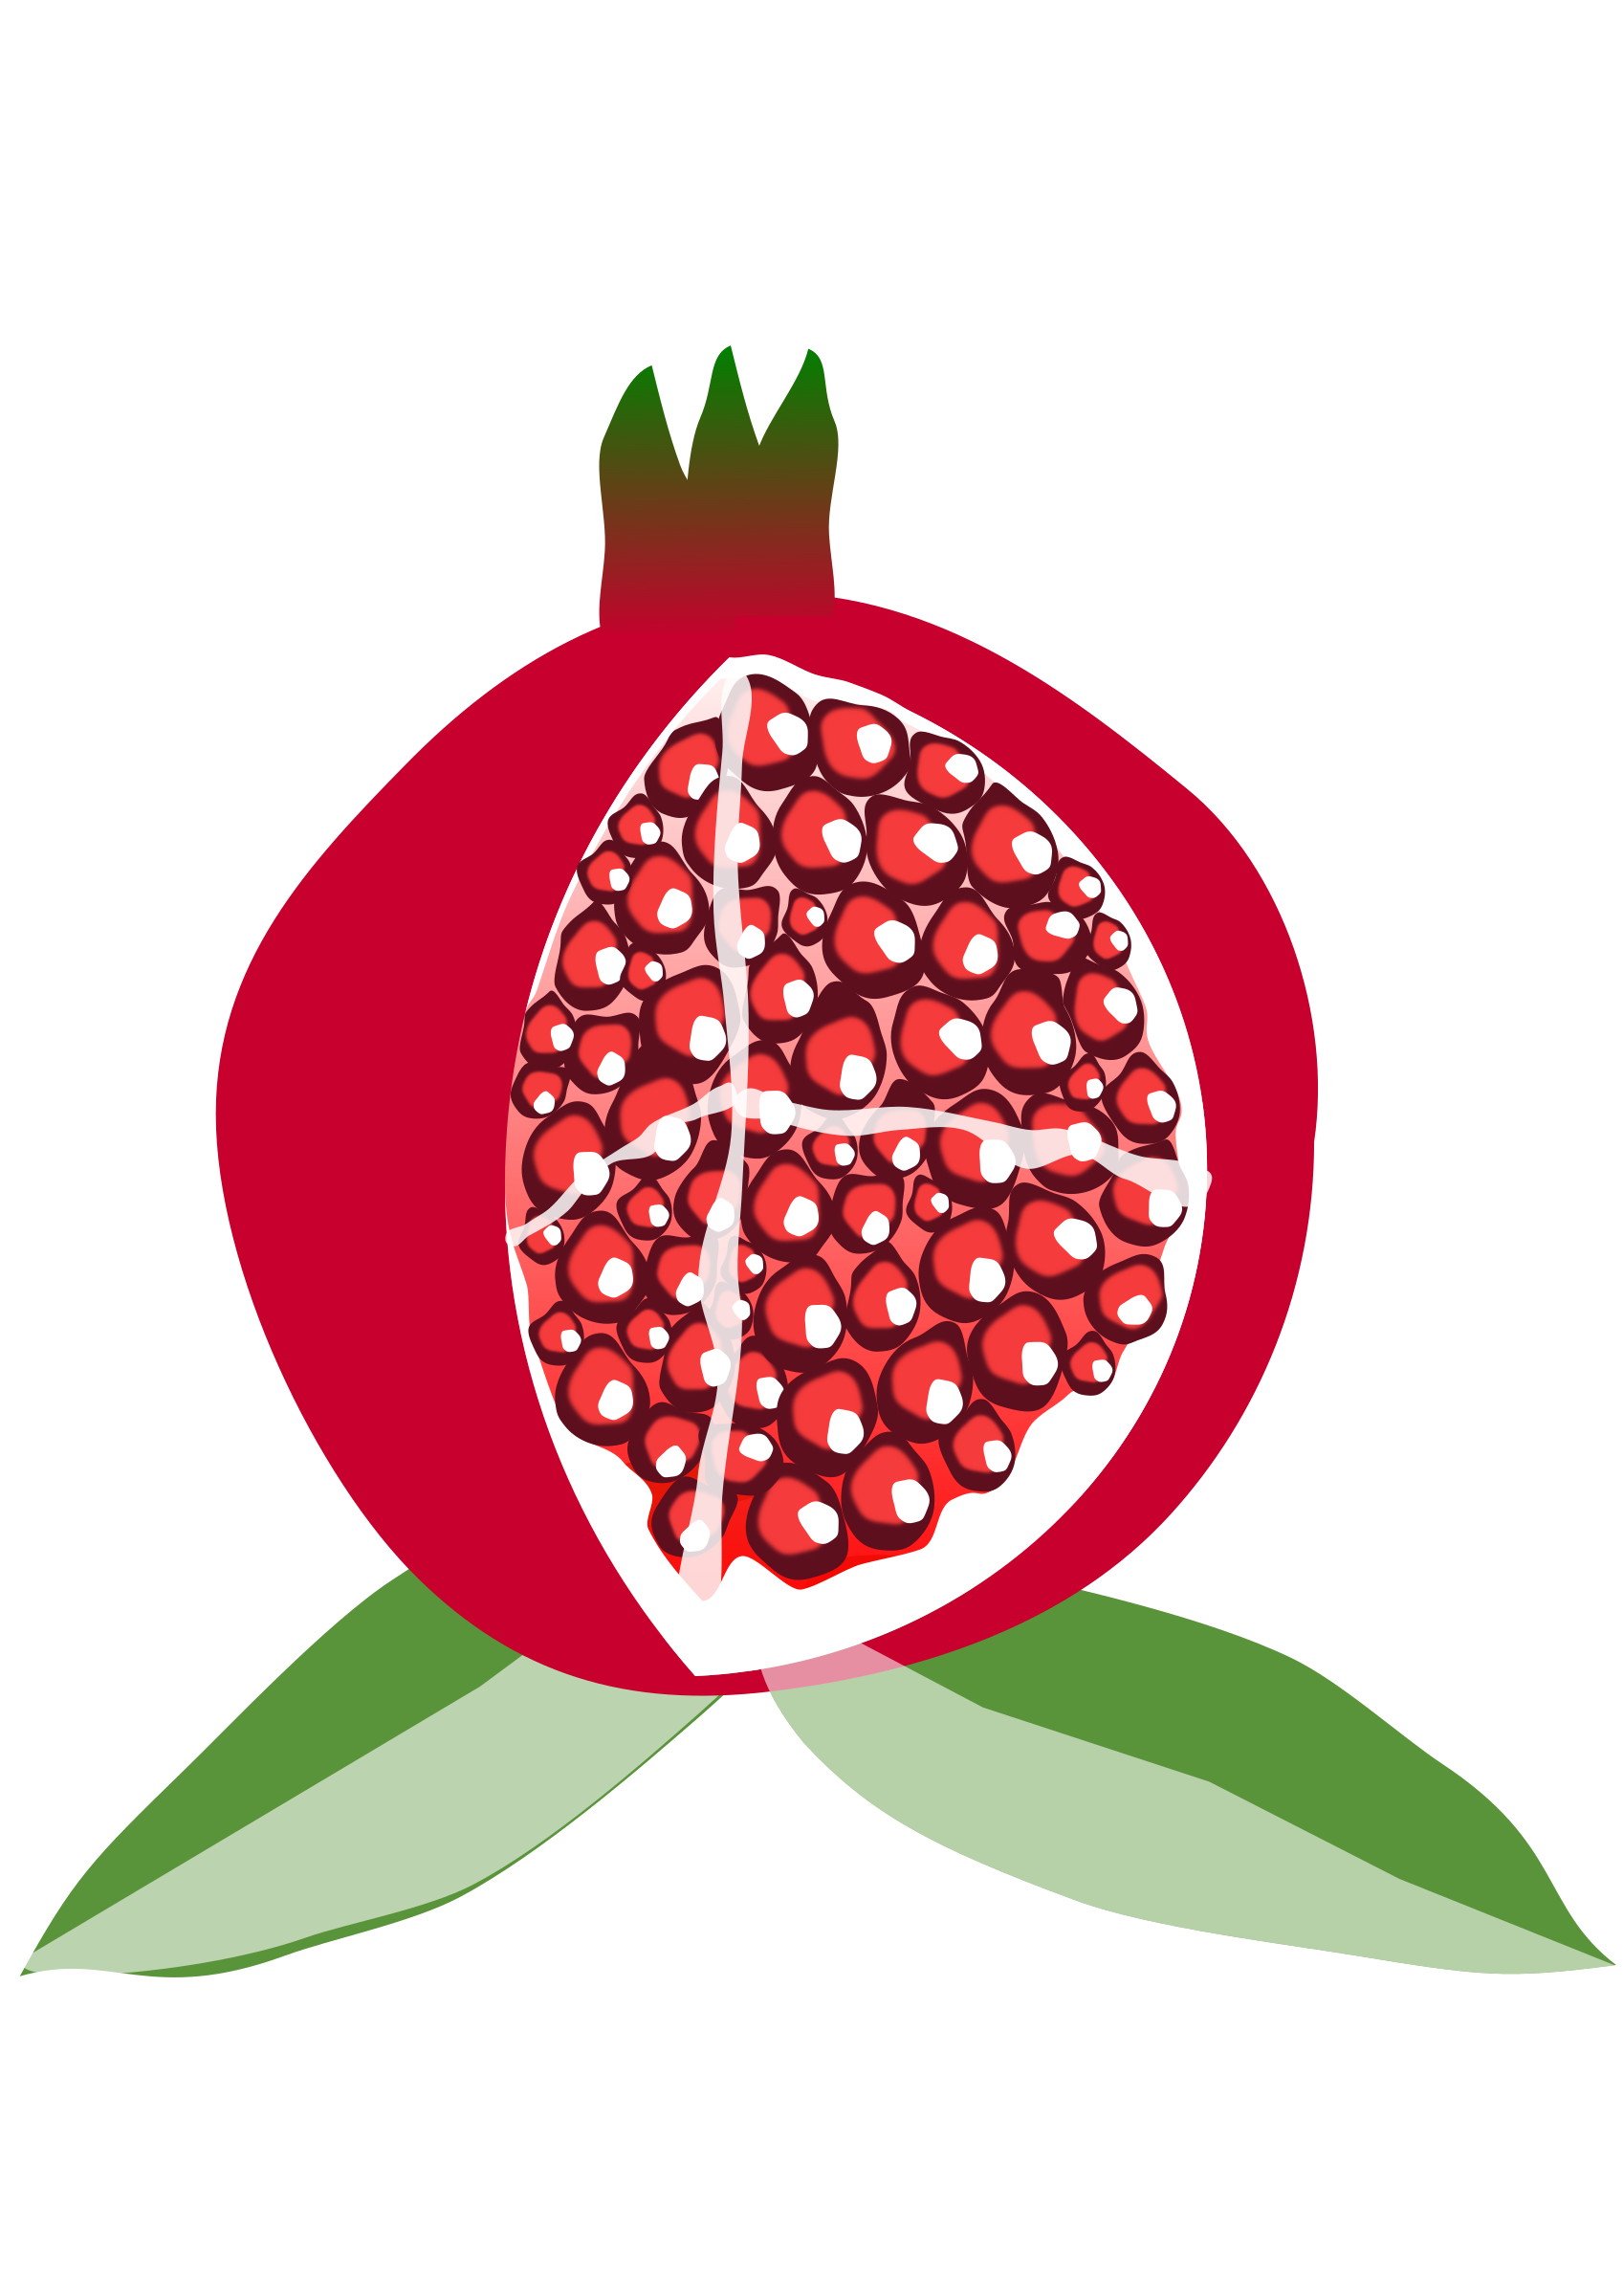 Pomegranate Png Available In Different Size image #27847